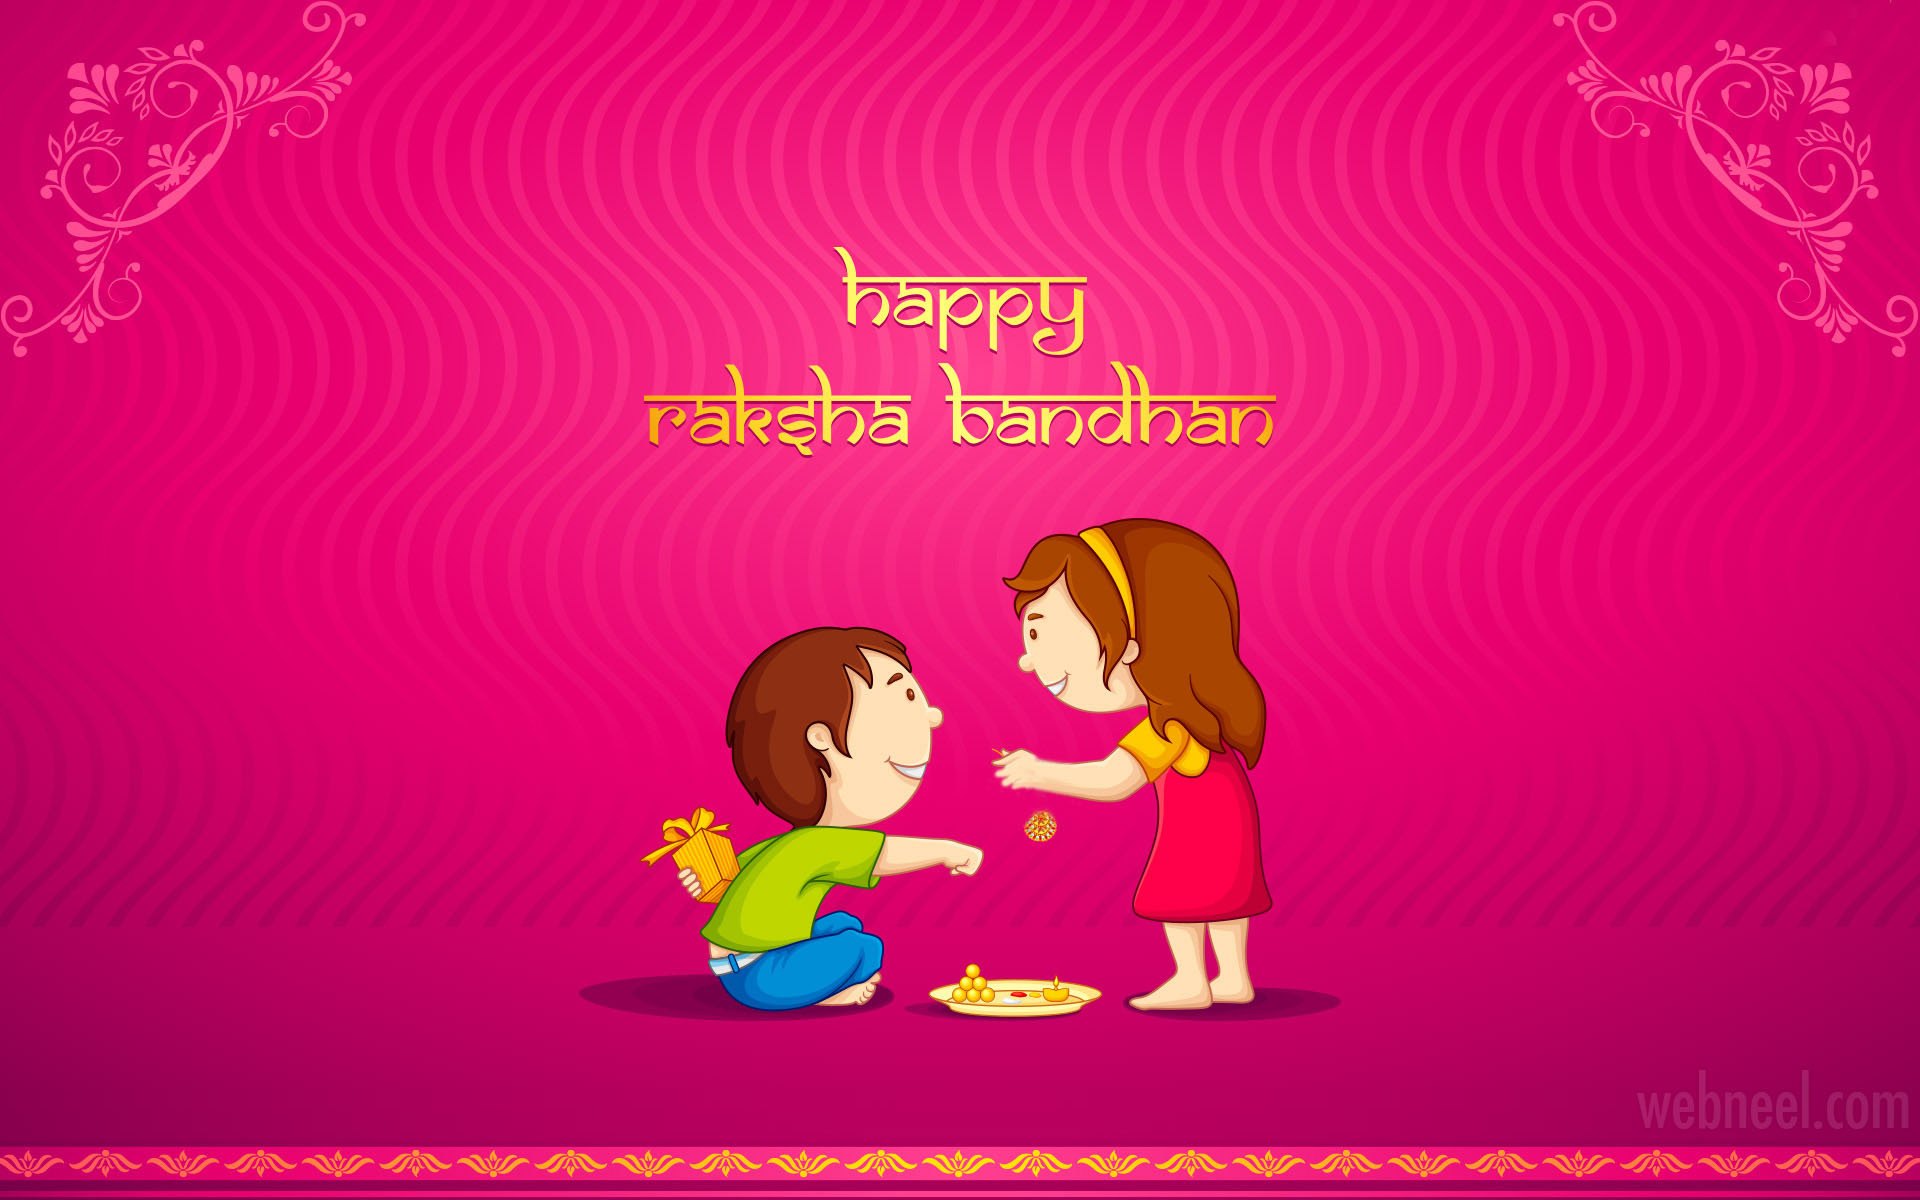 raksha bandhan wallpaper